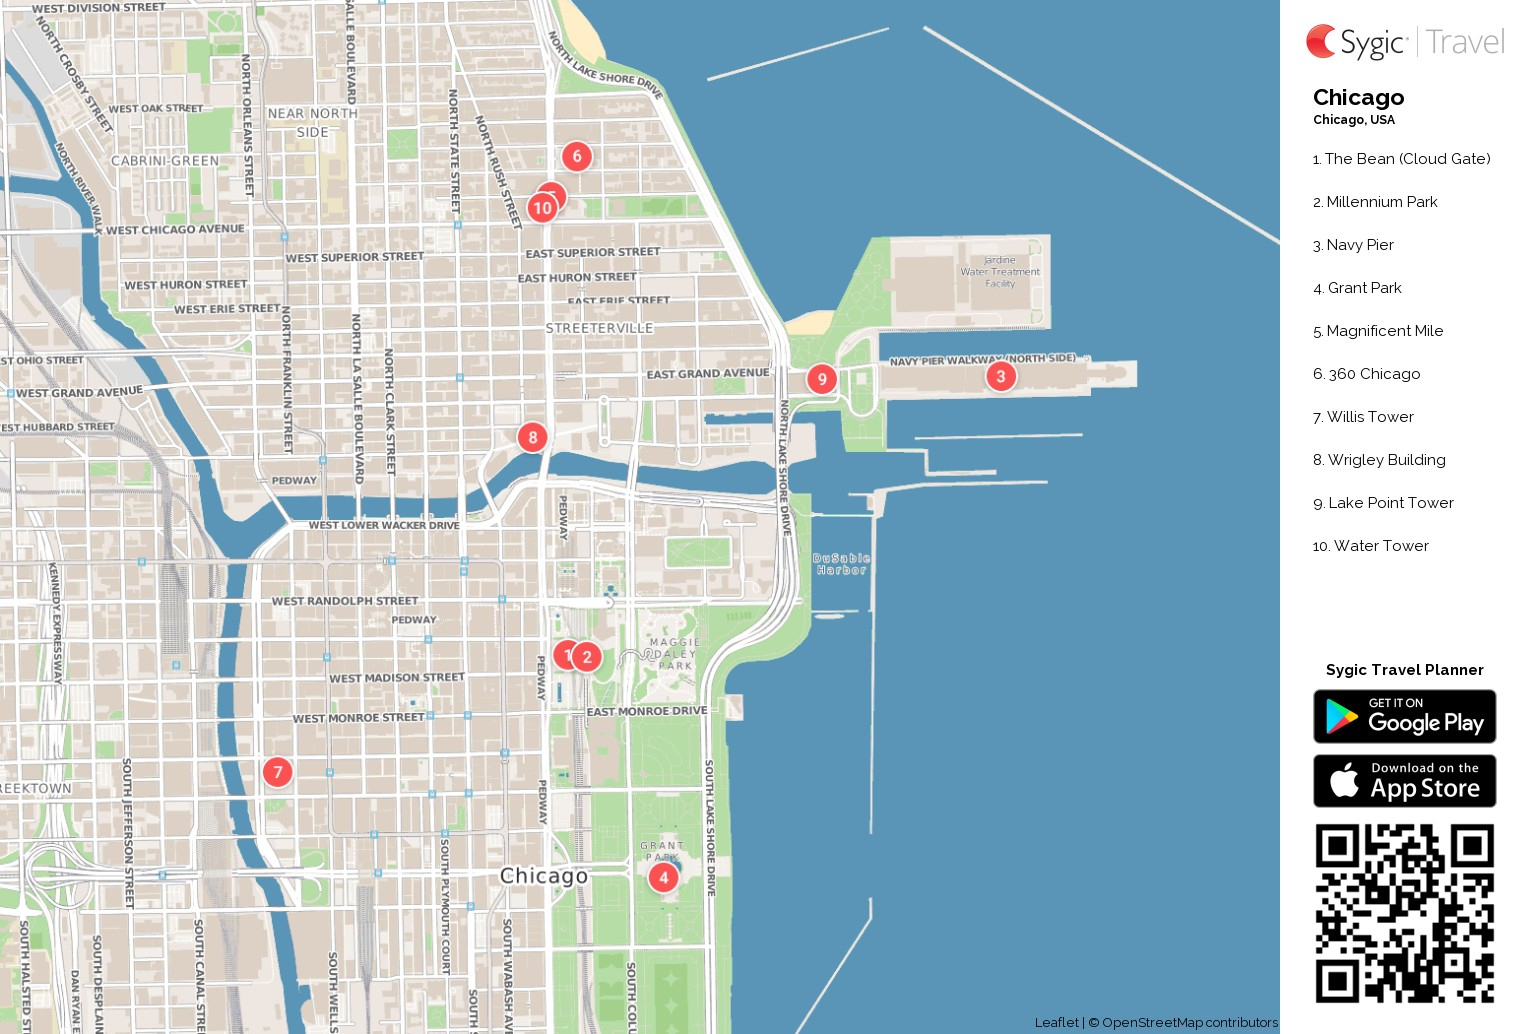 Printable Map Of Chicago Magnificent Mile - Www.healthgain.store • - Magnificent Mile Map Printable